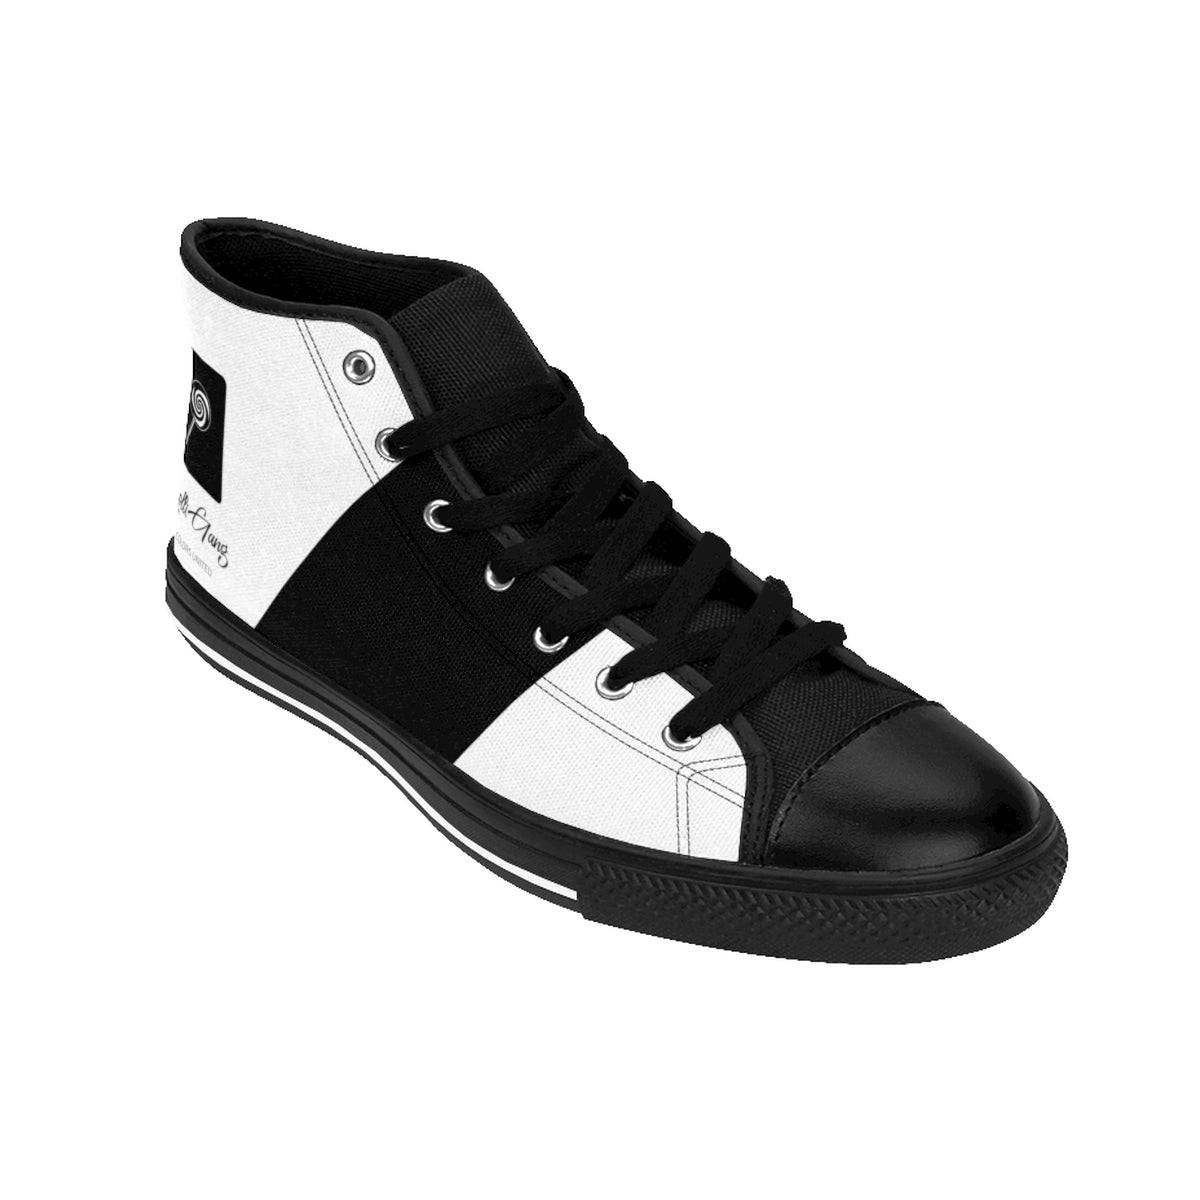 LOLLI GANG Women's High-top Sneakers (white)